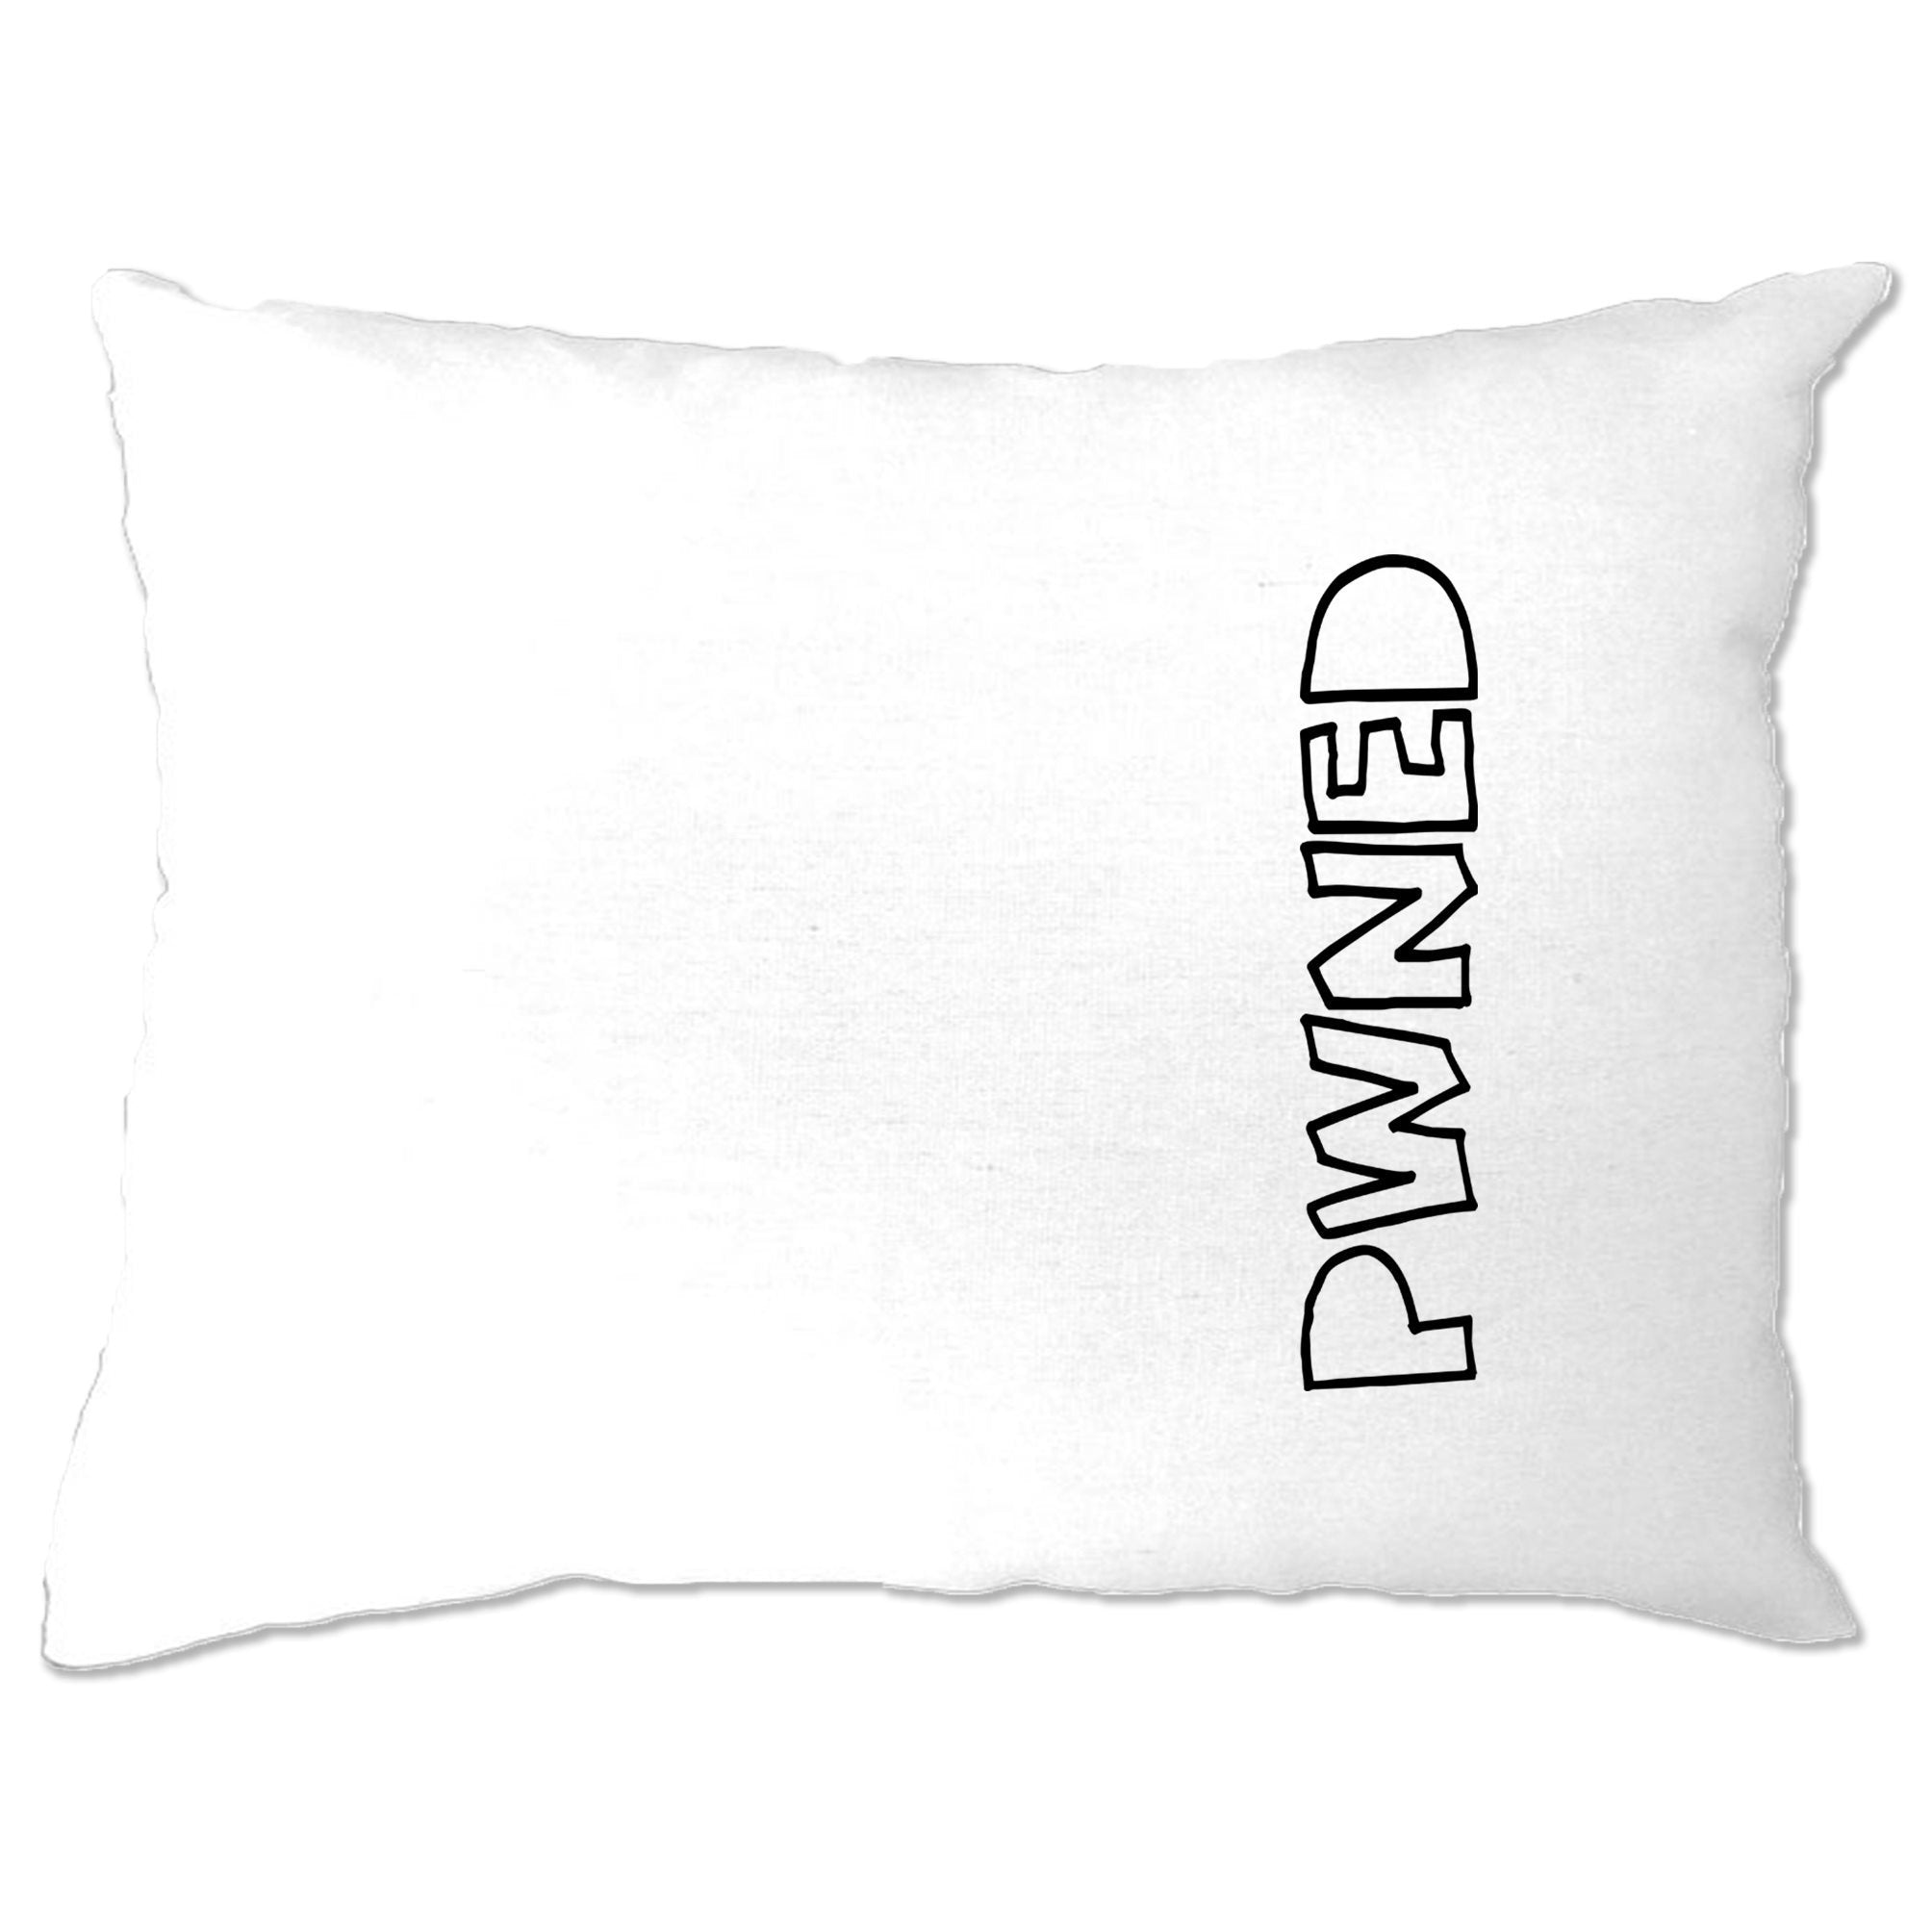 Novelty Gaming Pillow Case PWNED Sideways Text Slogan